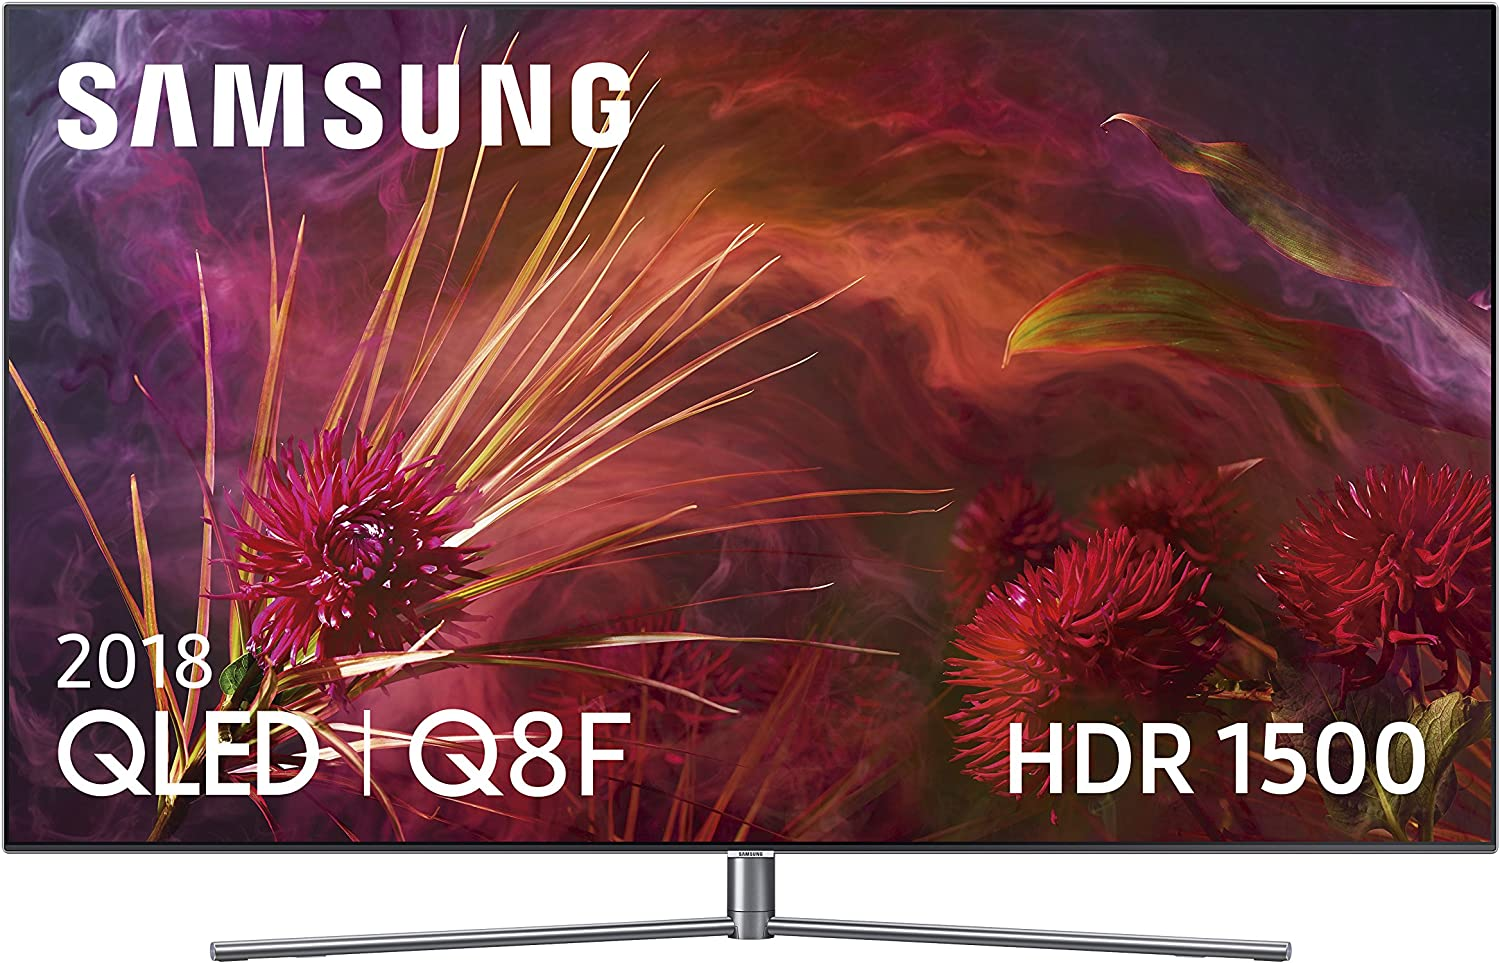 Samsung QLED 2018 55Q8FN - Smart TV Plano de 55